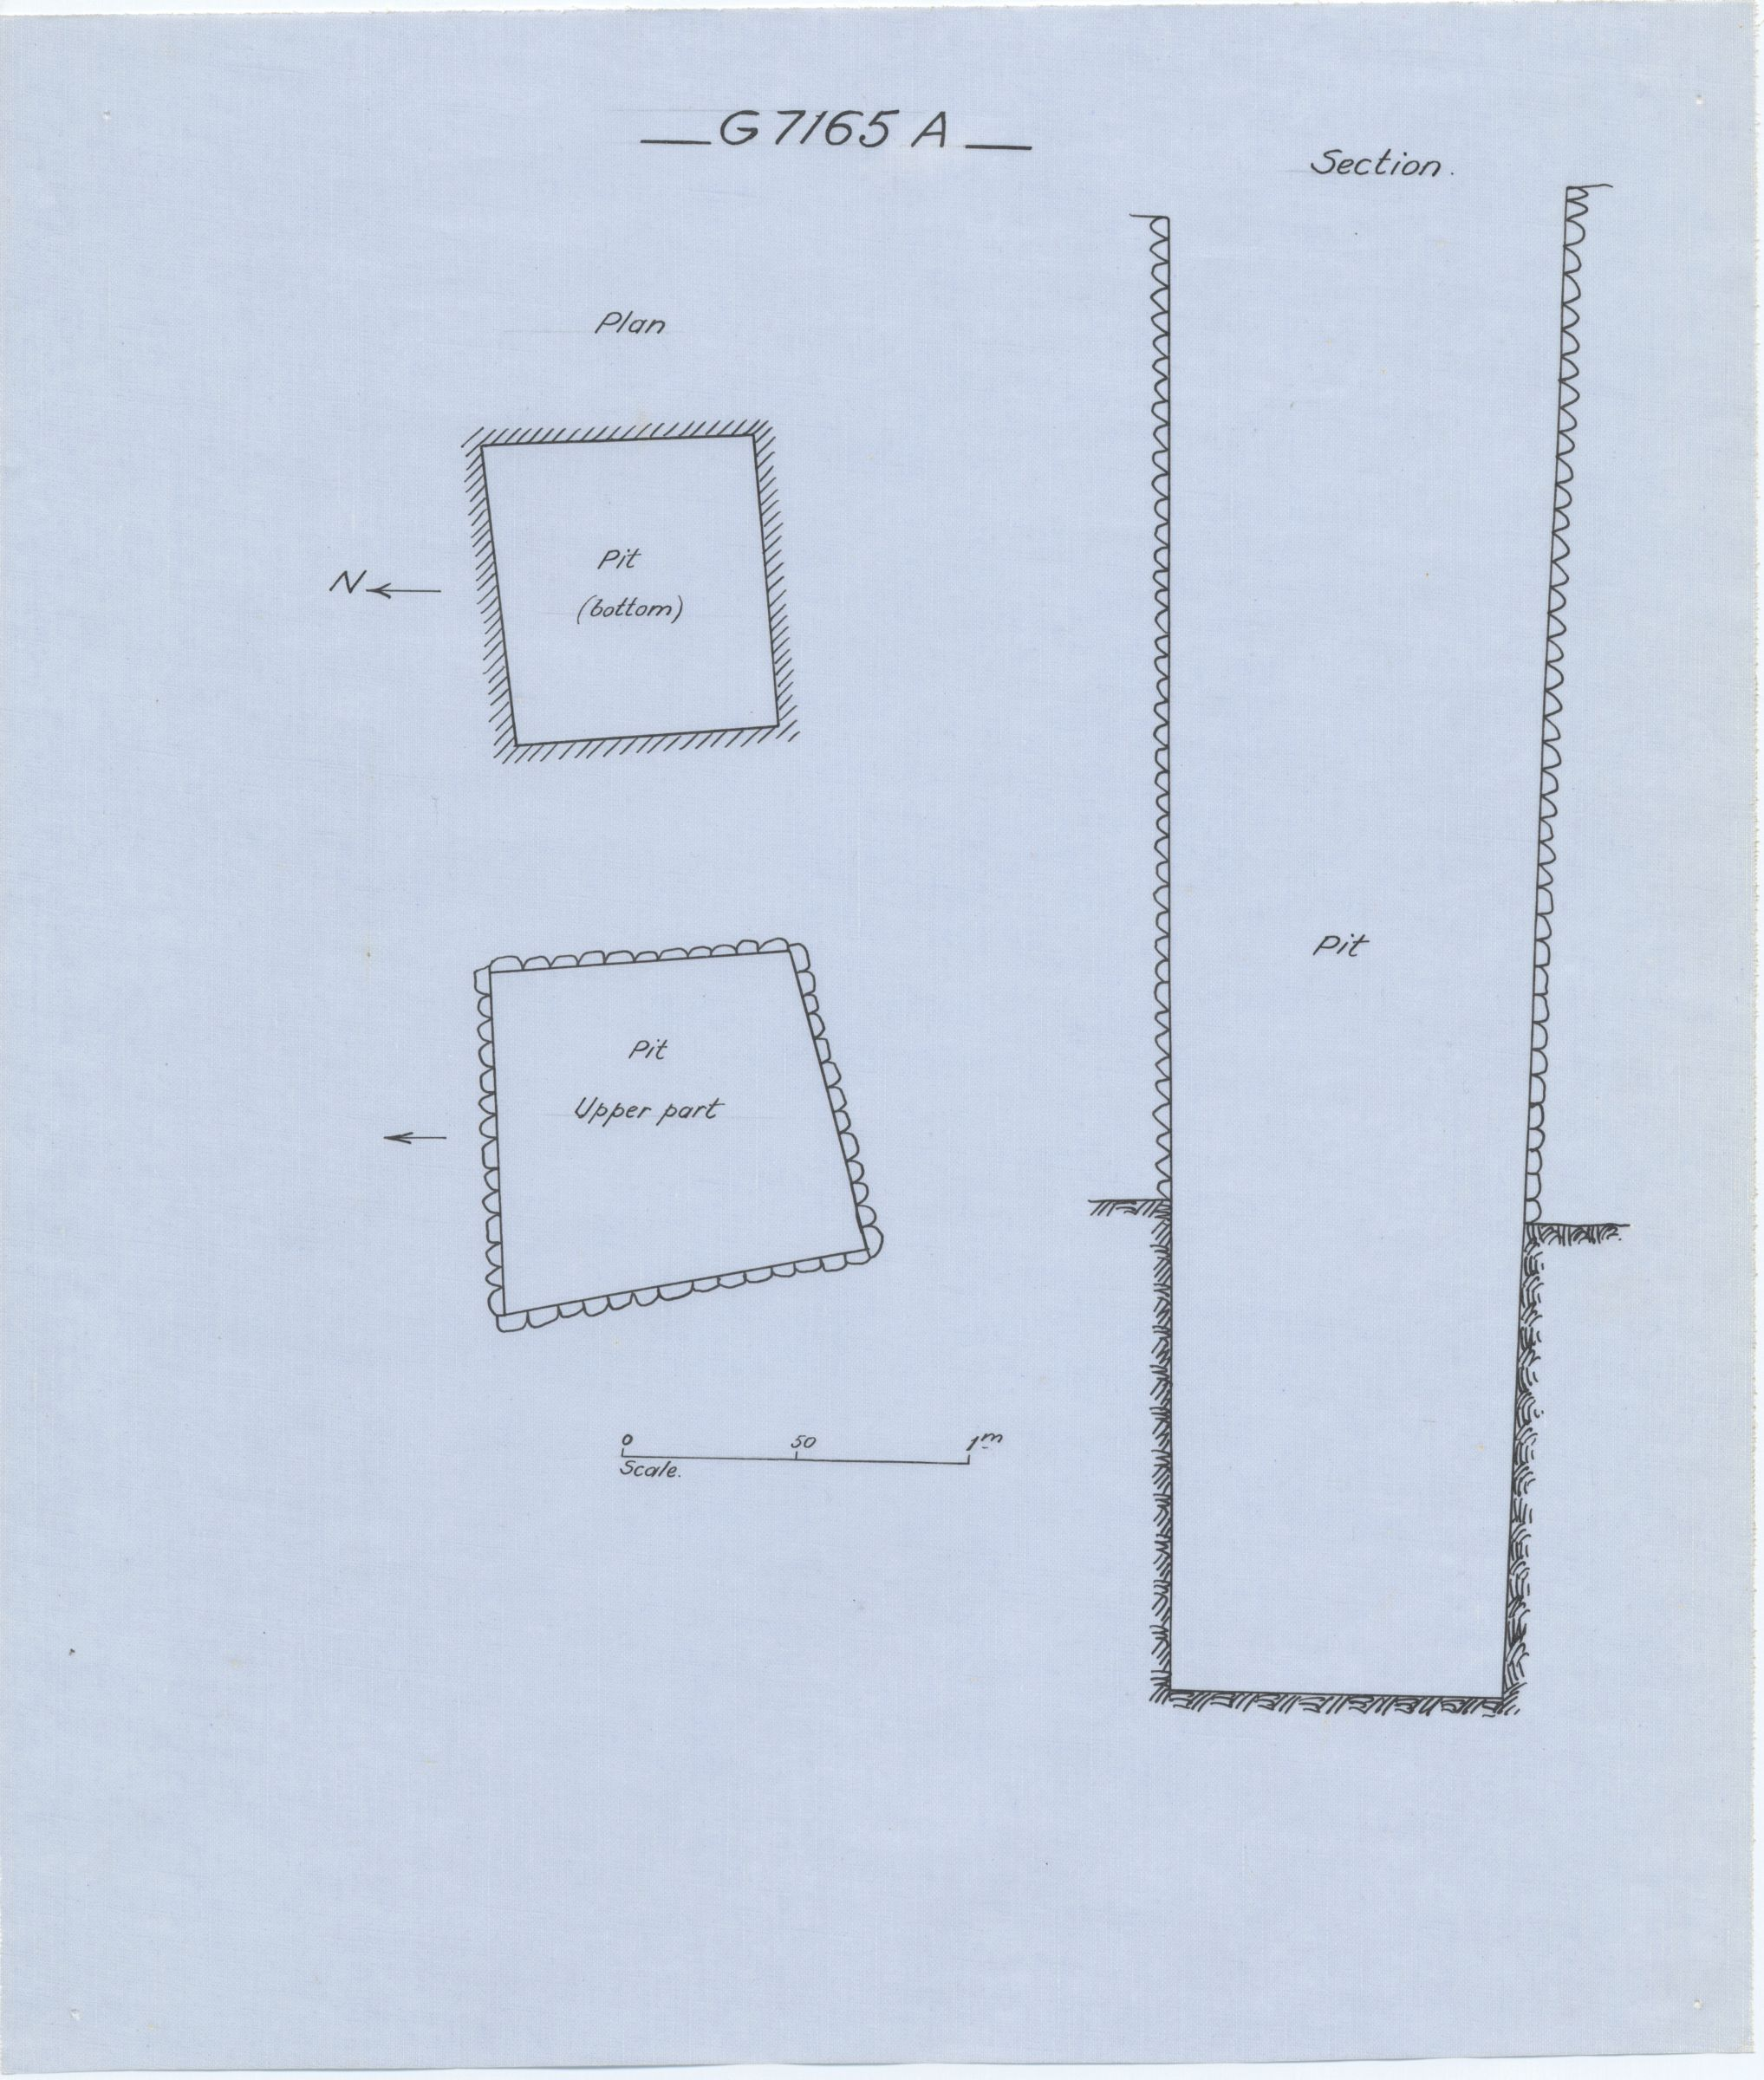 Maps and plans: G 7165, Shaft A